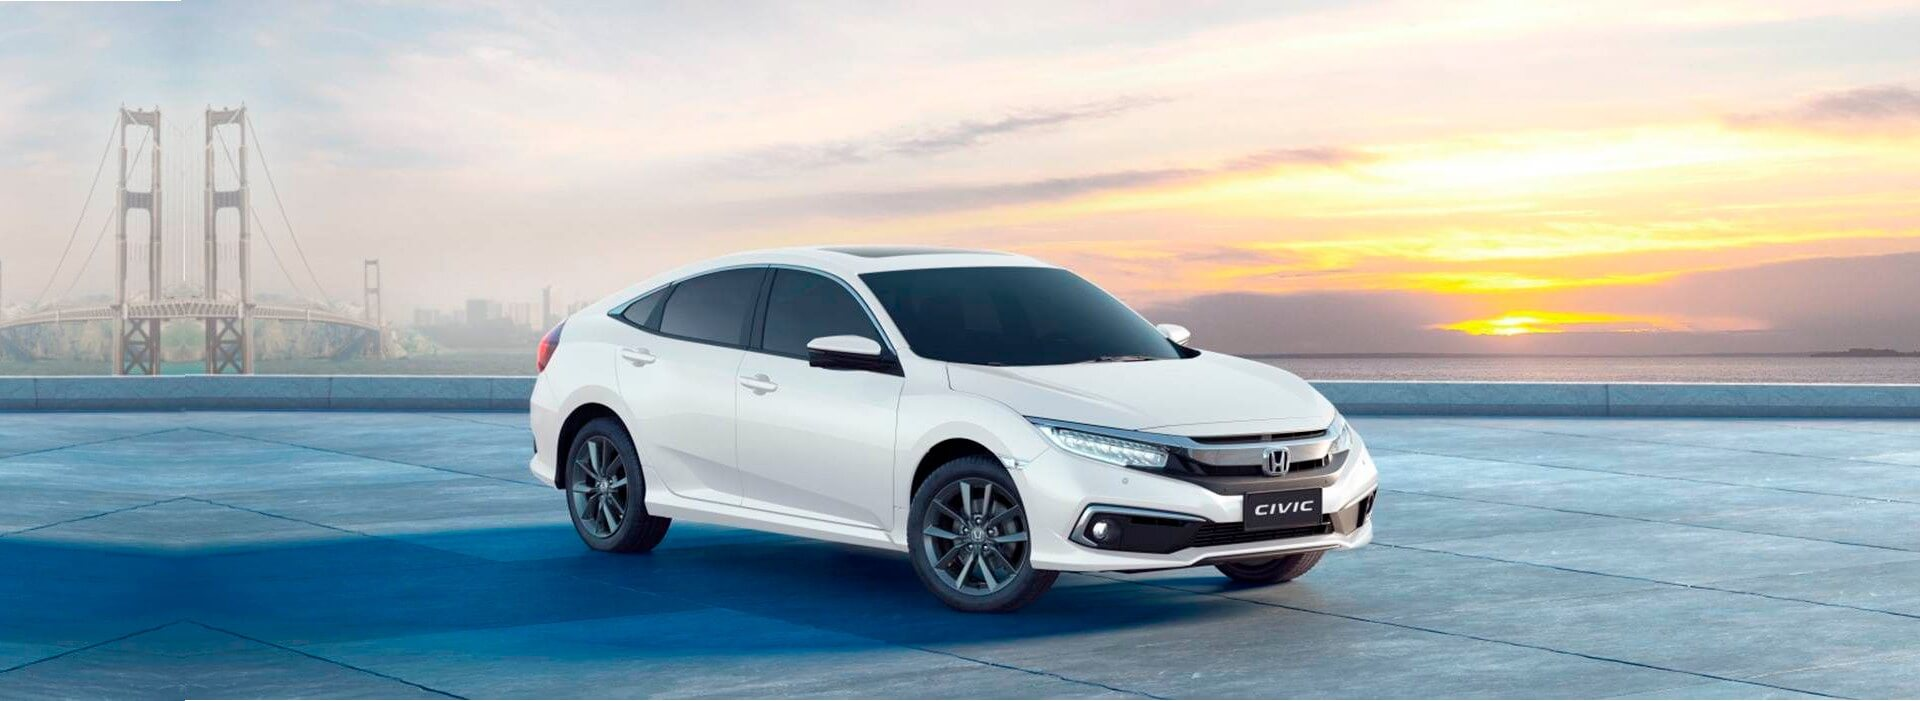 imperial-honda-civic-2021